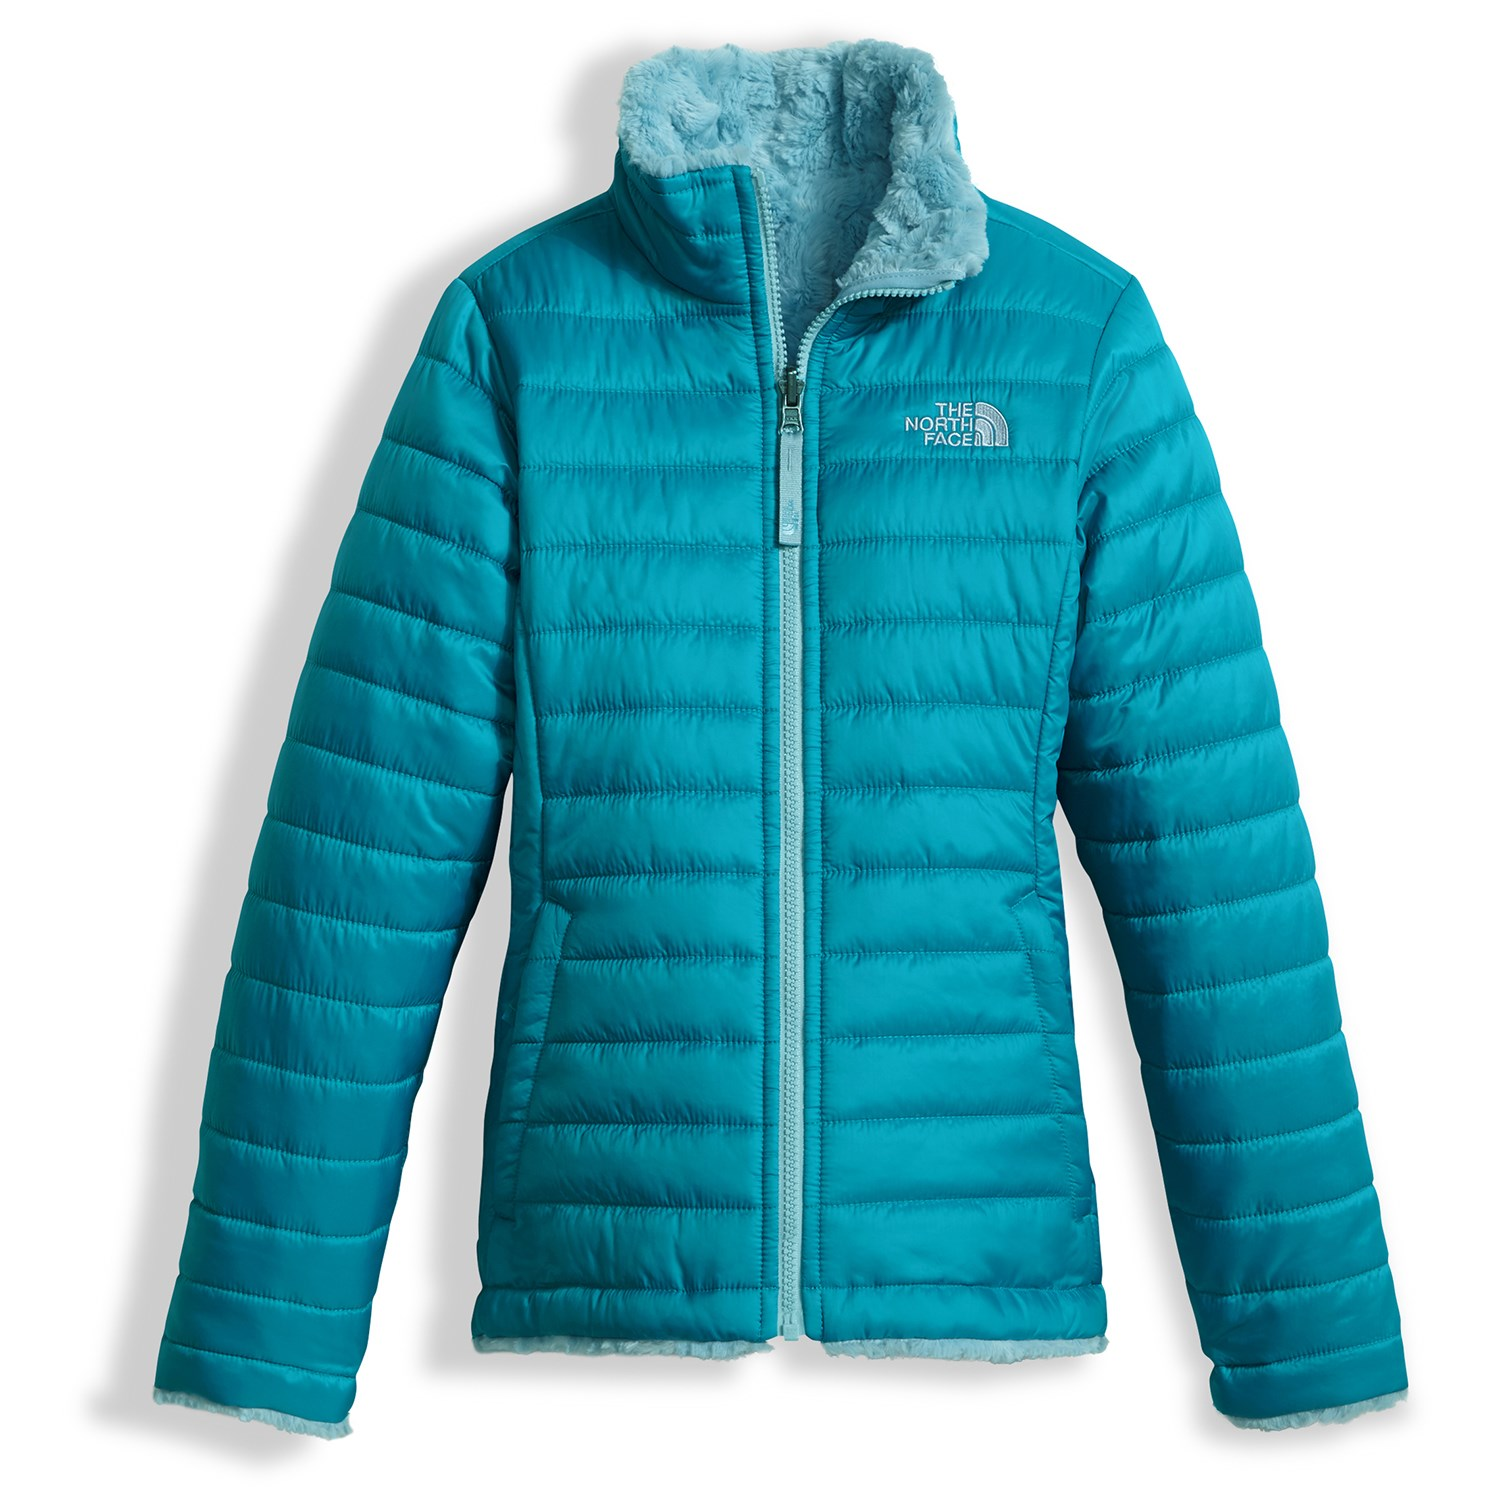 6f735ee0f The North Face Reversible Mossbud Swirl Jacket - Girls'